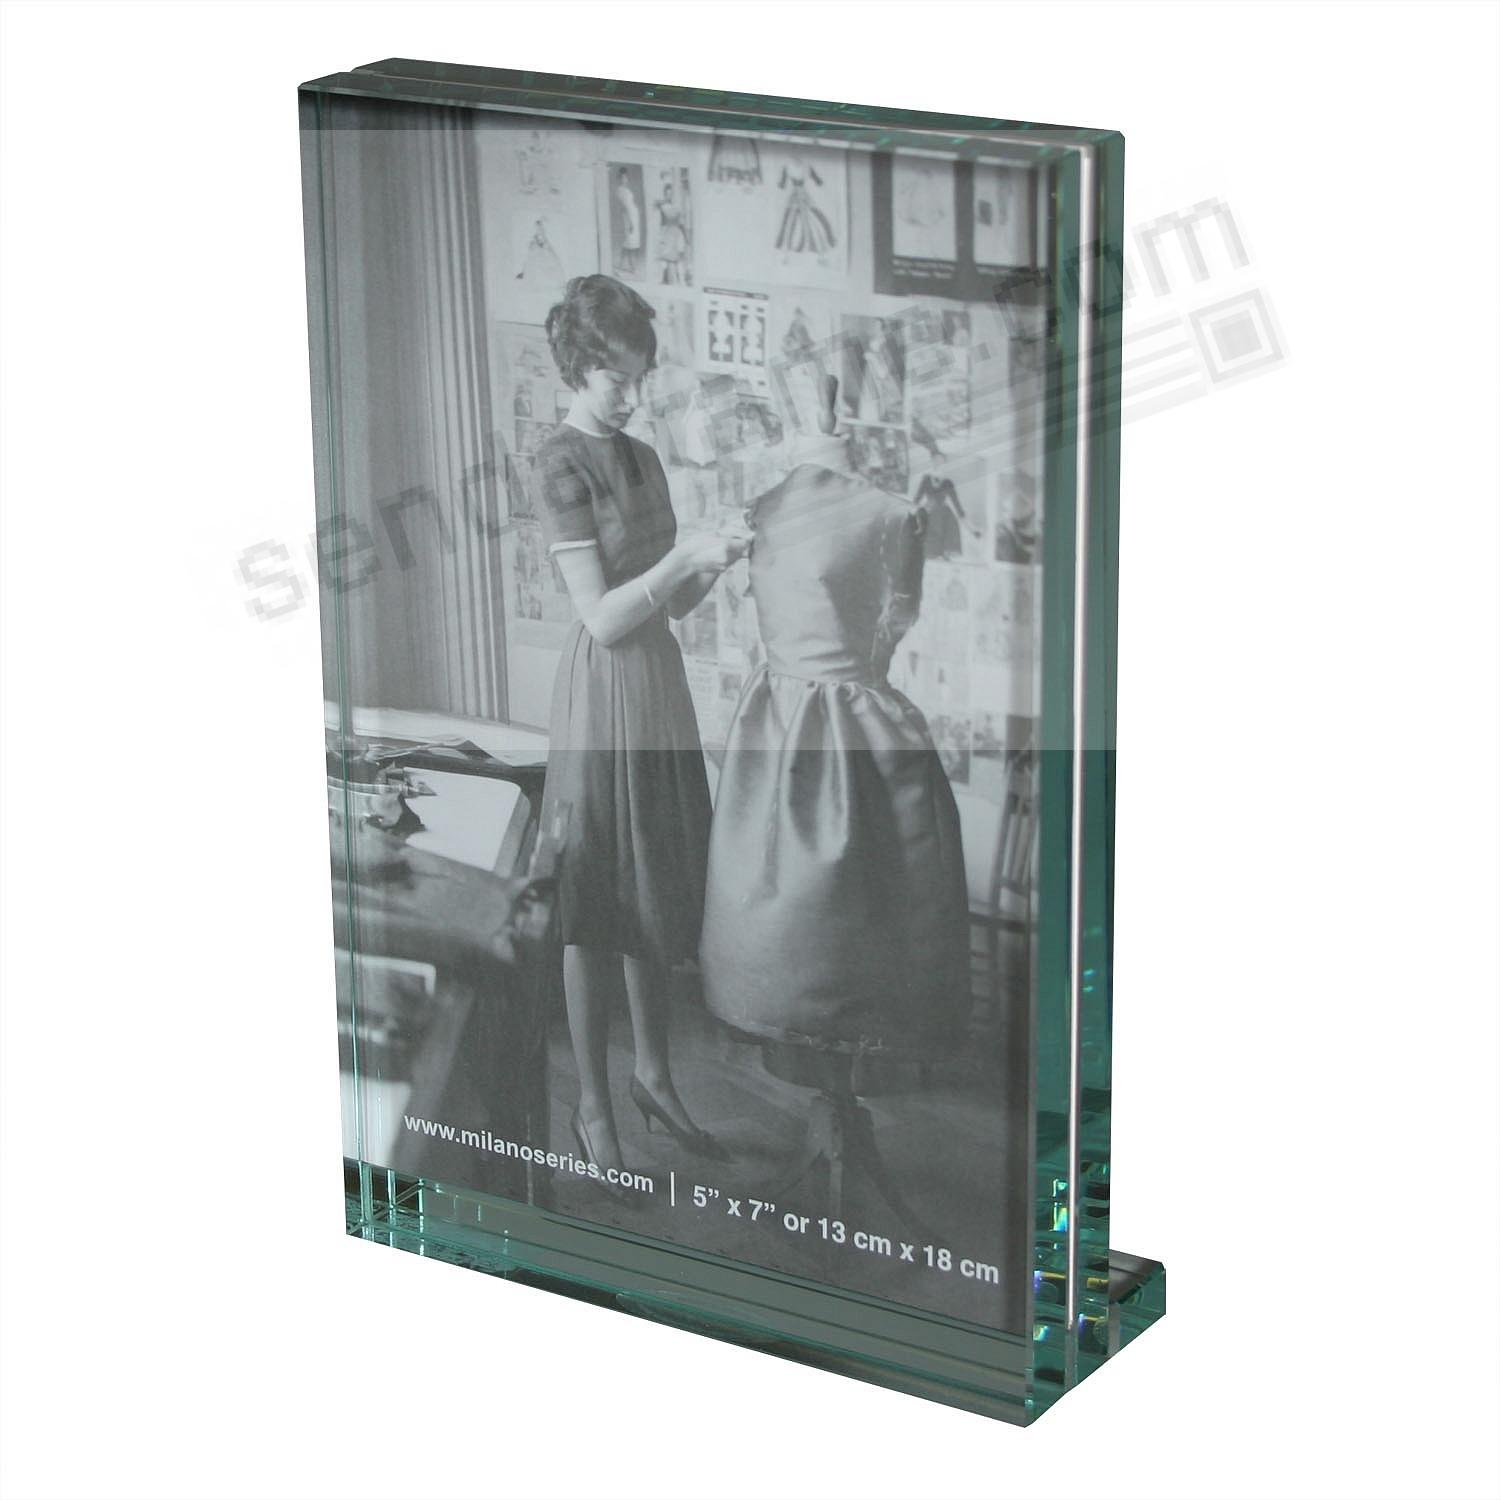 CLARITY Glass Block frame by Milano Series - Picture Frames, Photo ...